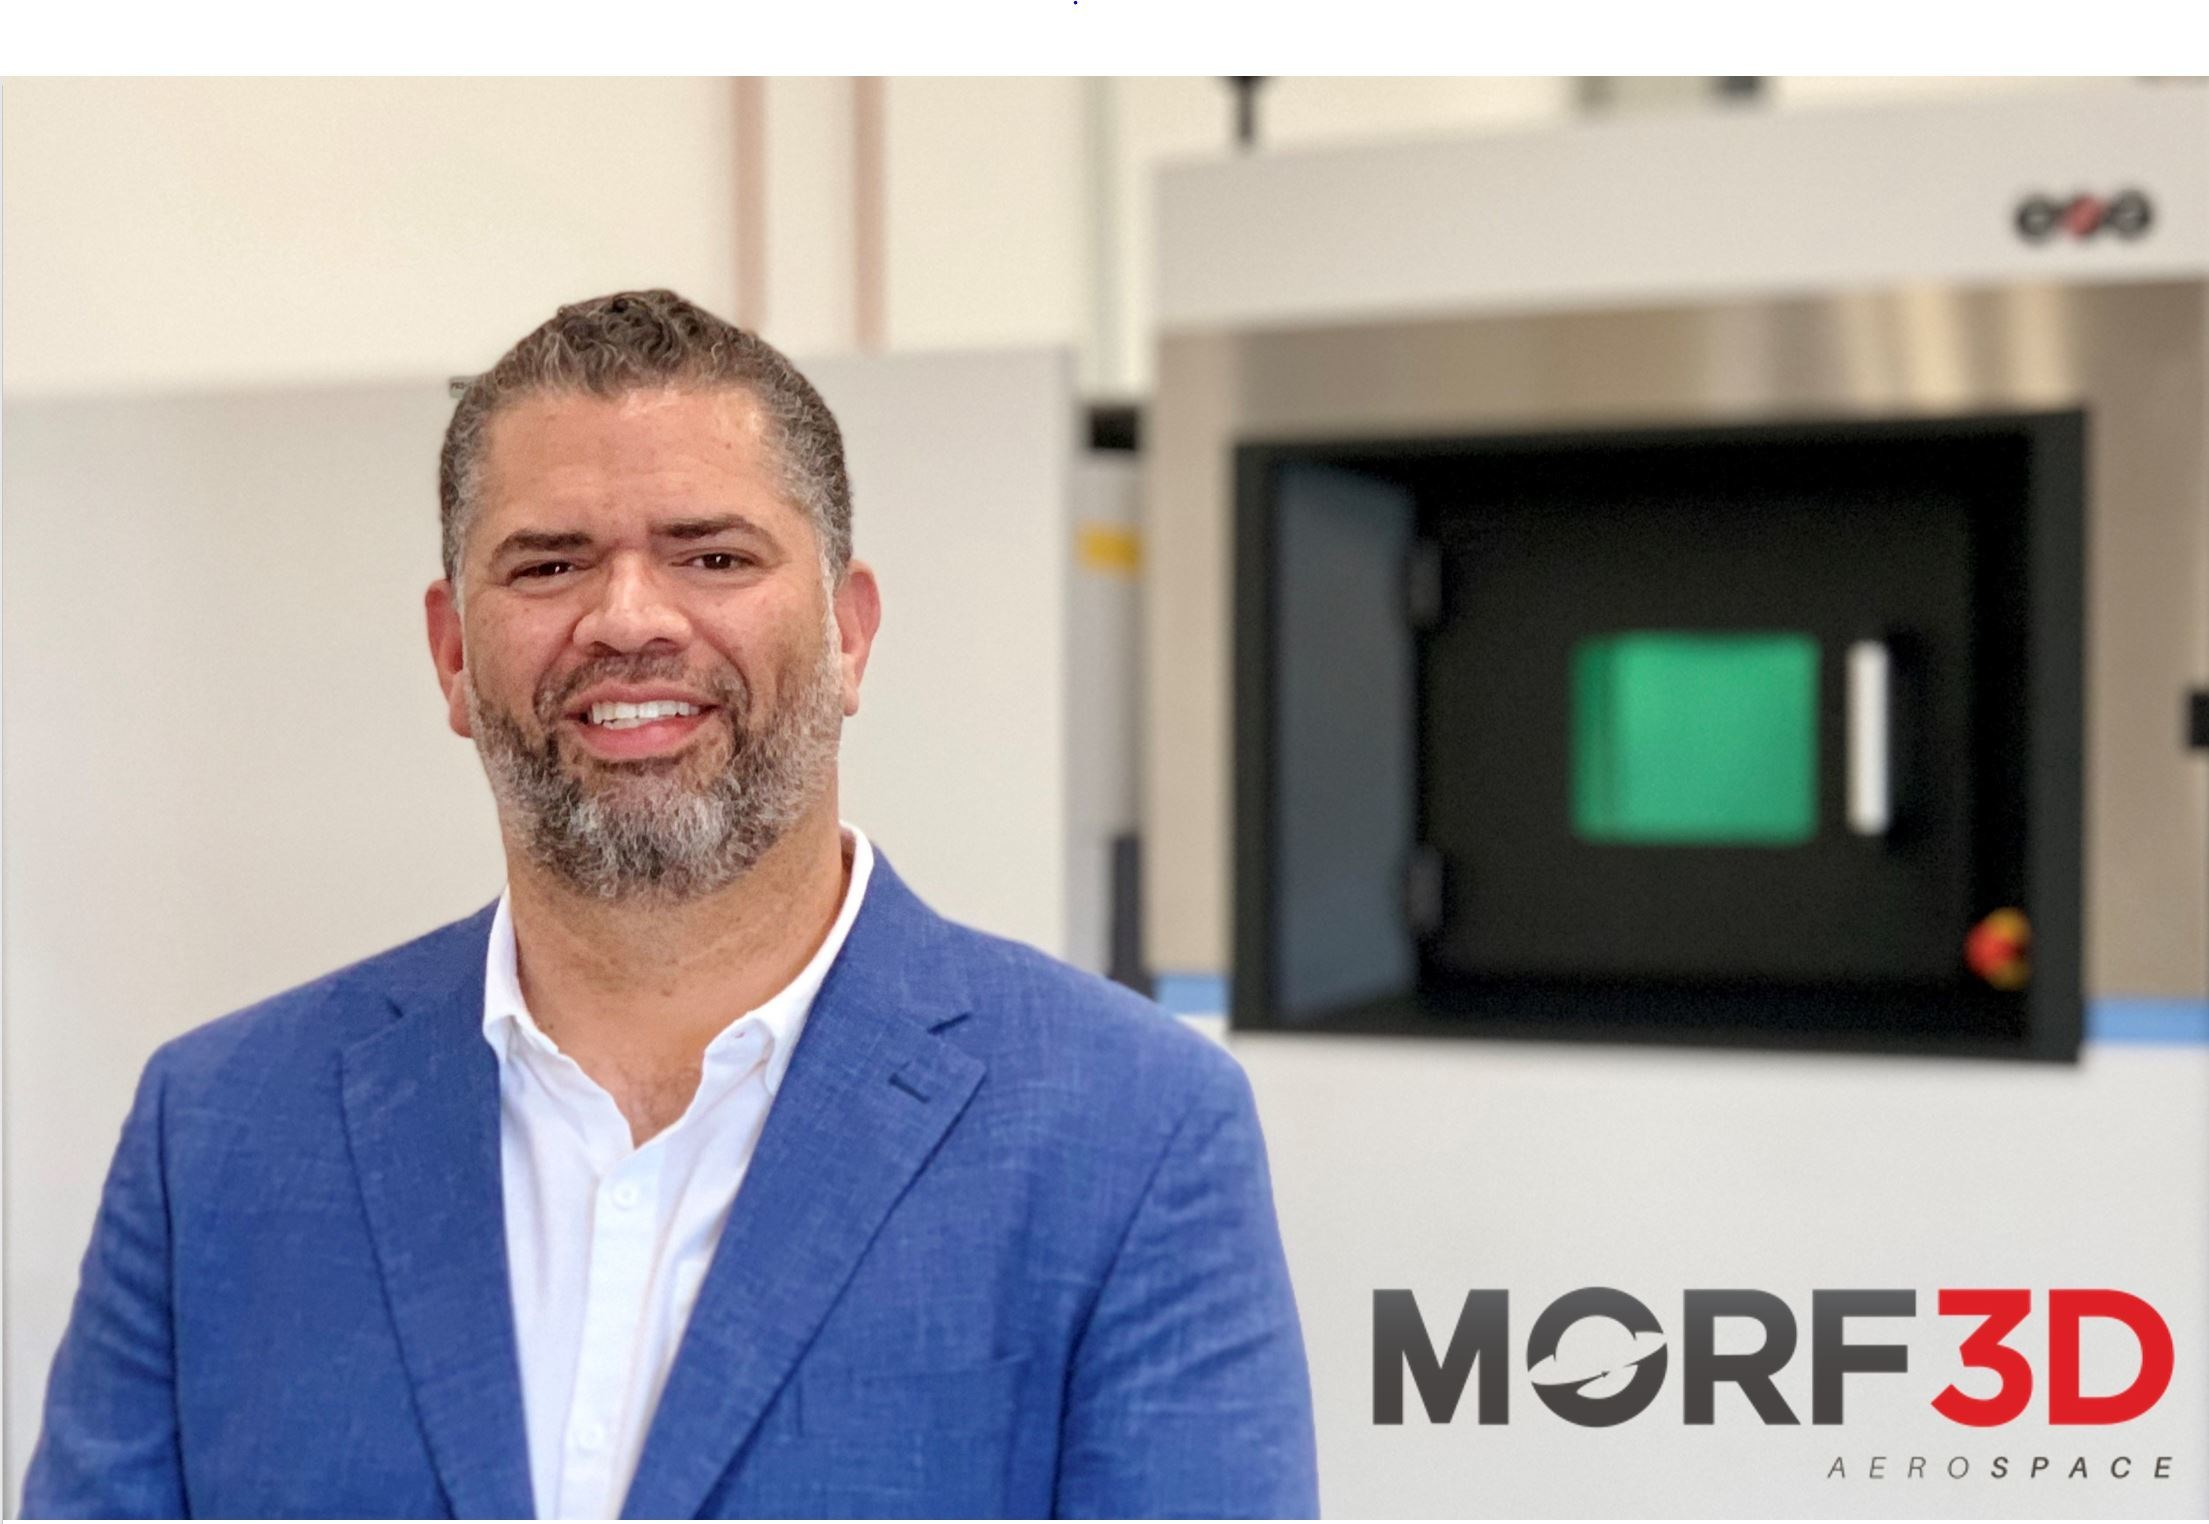 Ivan Madera, founder and CEO of Morf3D. Photo via Morf3D